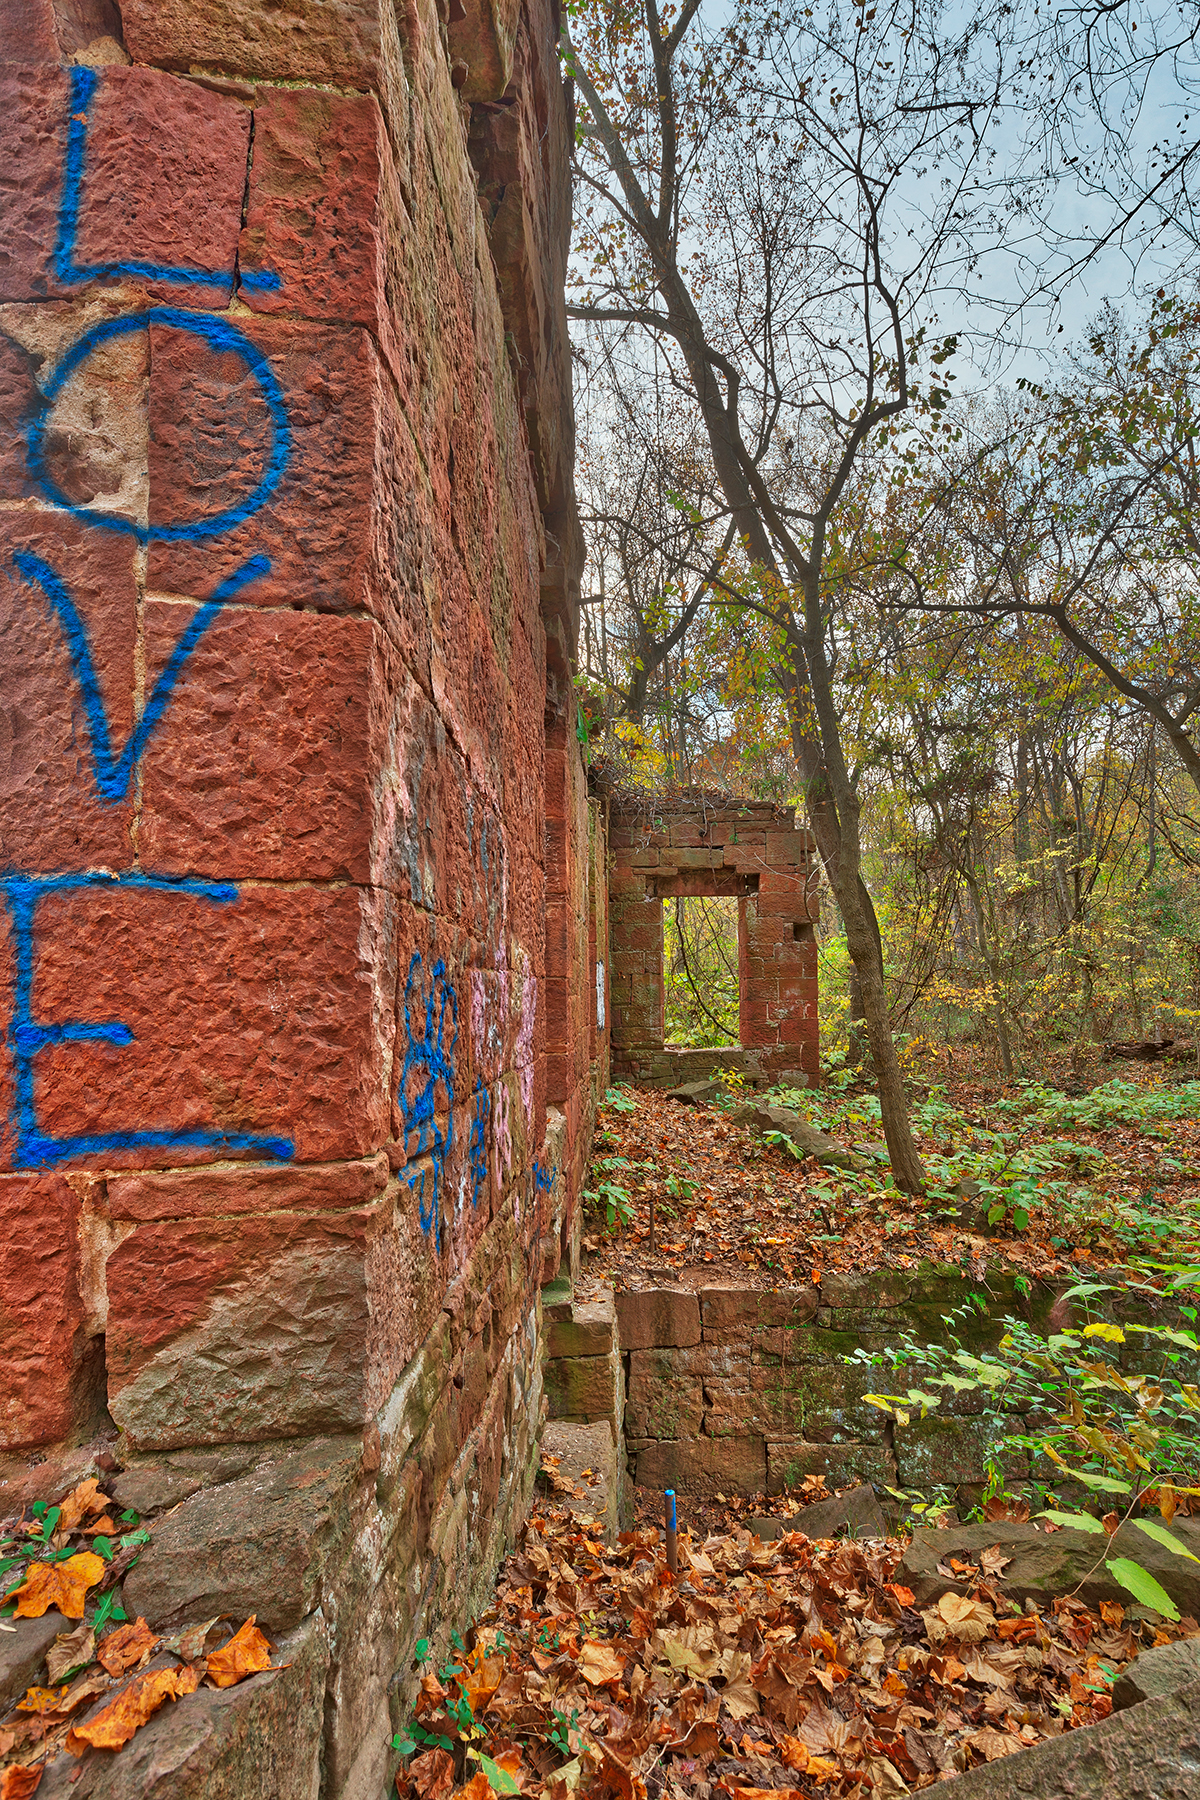 Seneca mill love ruins - hdr photo